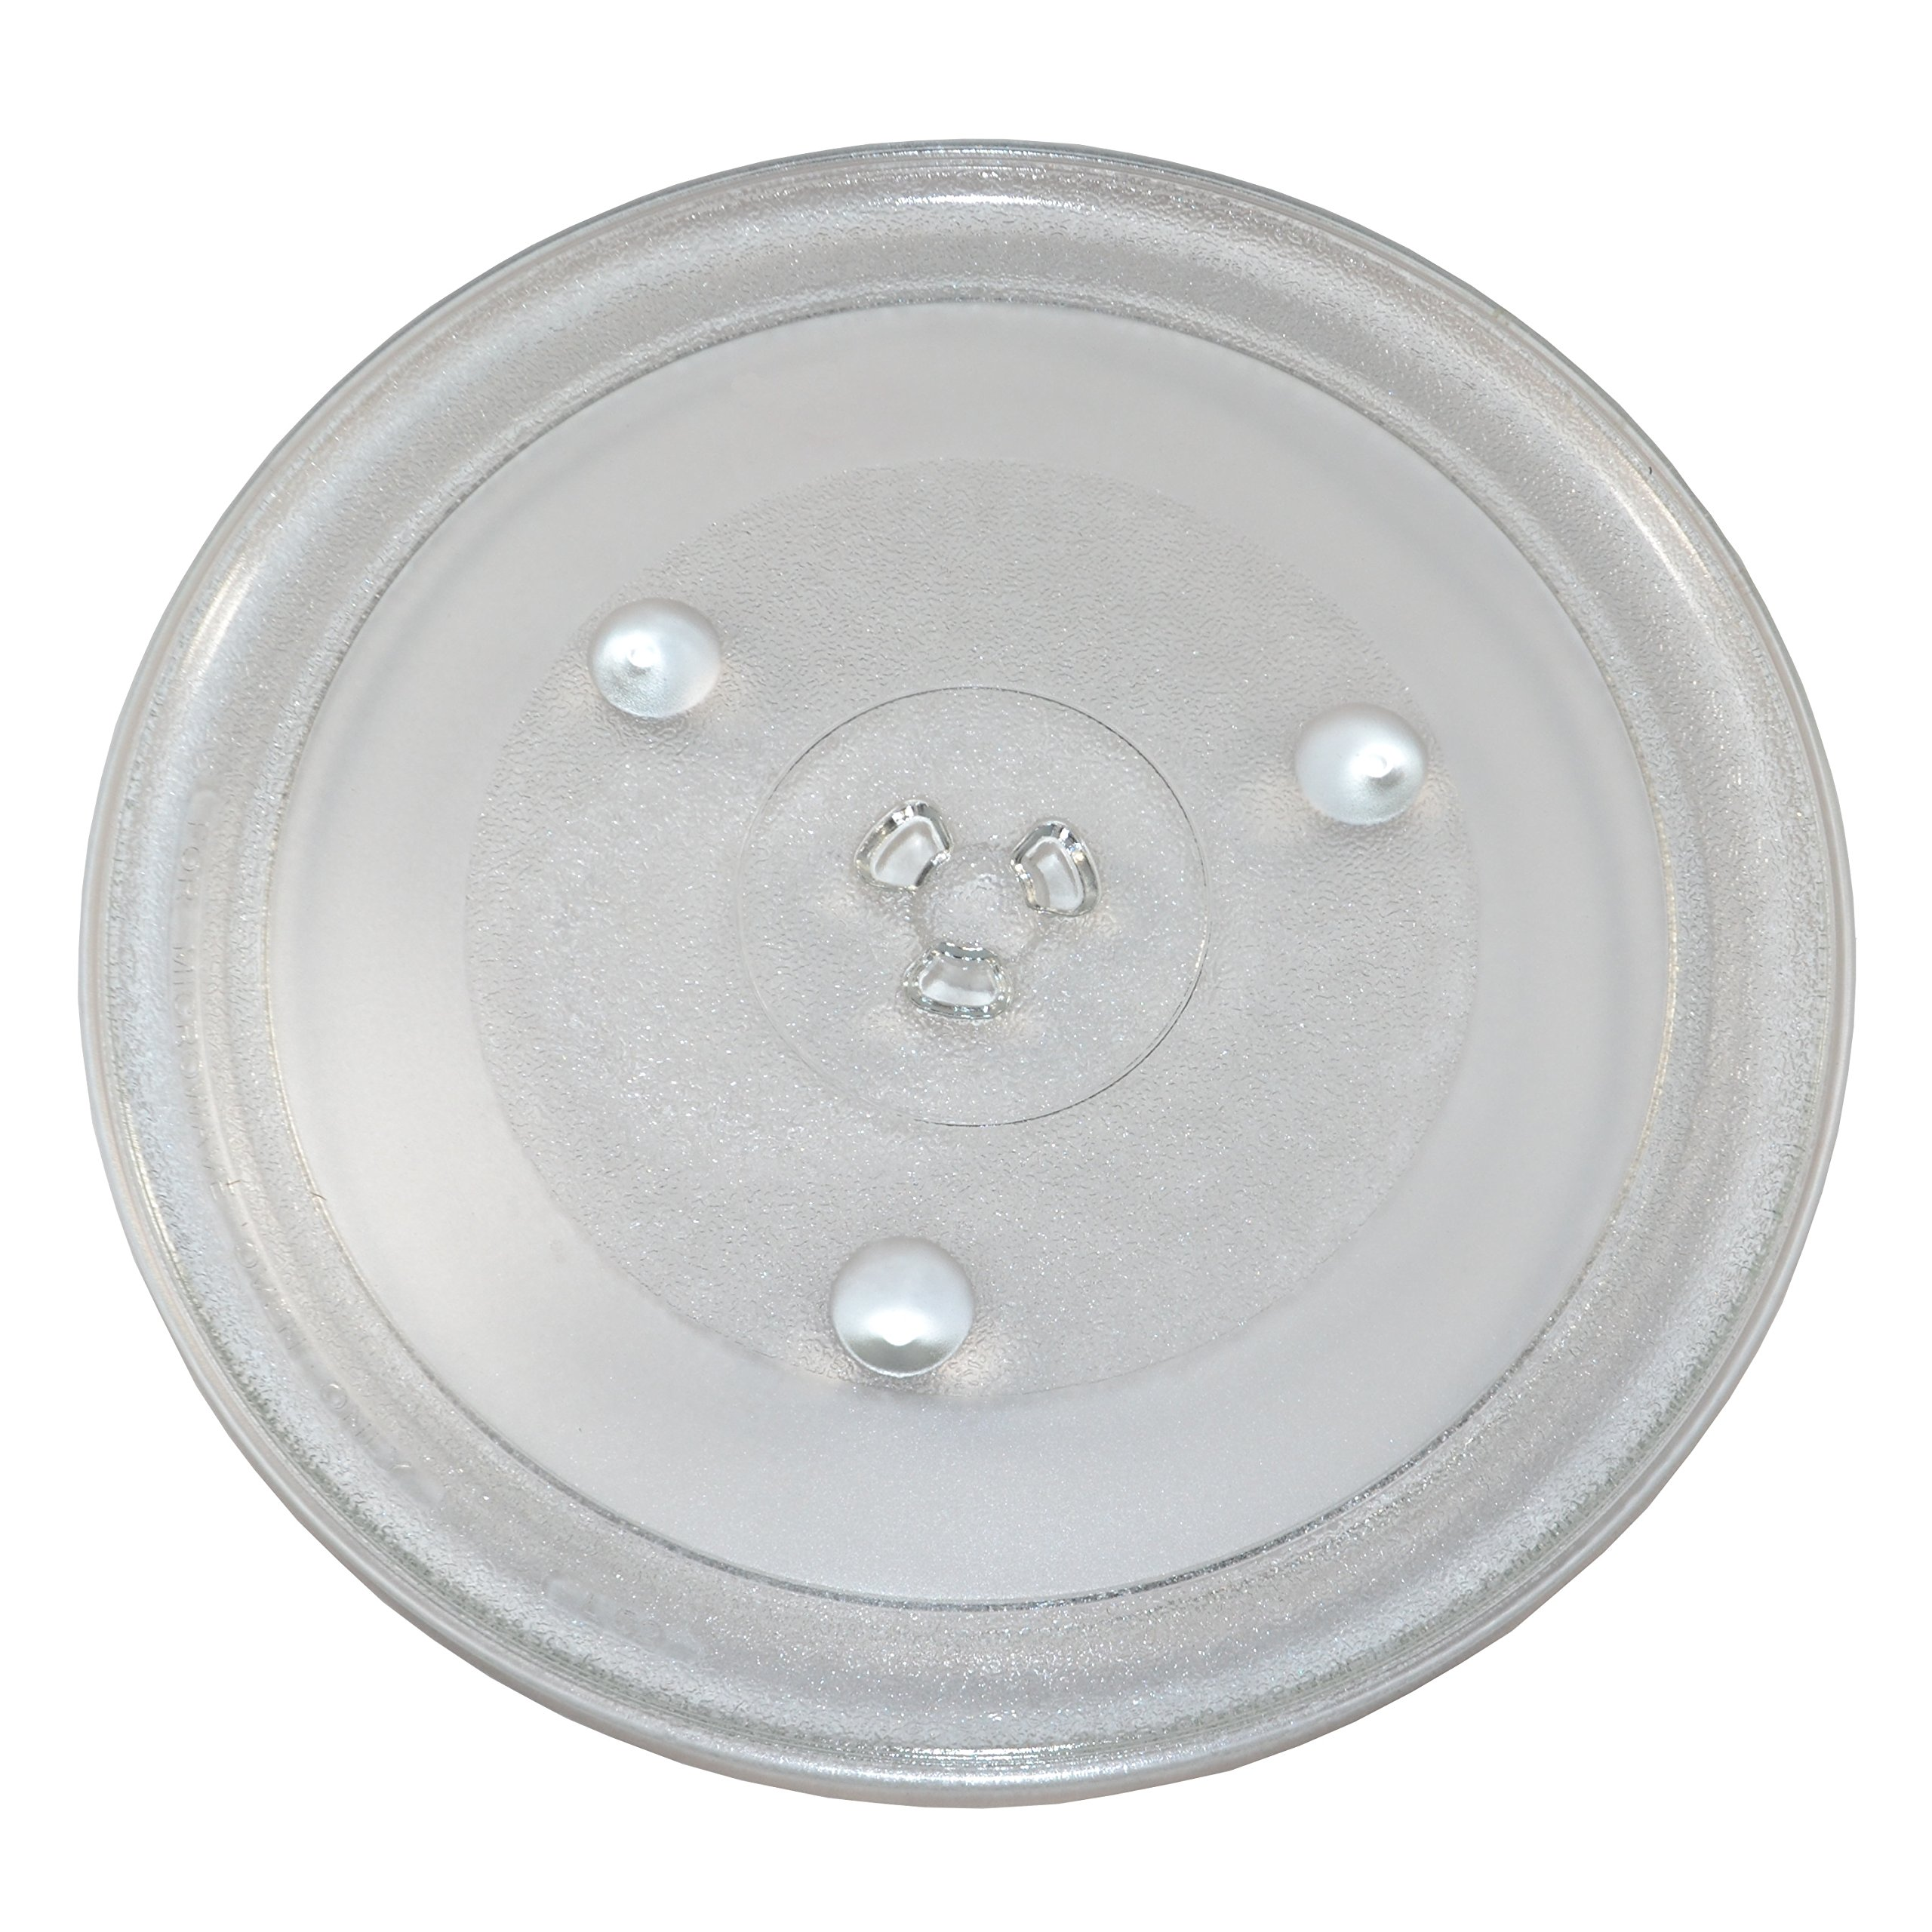 HQRP 12-3/8 inch Glass Turntable Tray compatible with Hamilton Beach P100N30 P100N30AL P100N30ALS3B HBP100N30ALS3 GA1000AP30P3 EM031MZC-X1 Microwave Oven Cooking Plate 315mm by HQRP